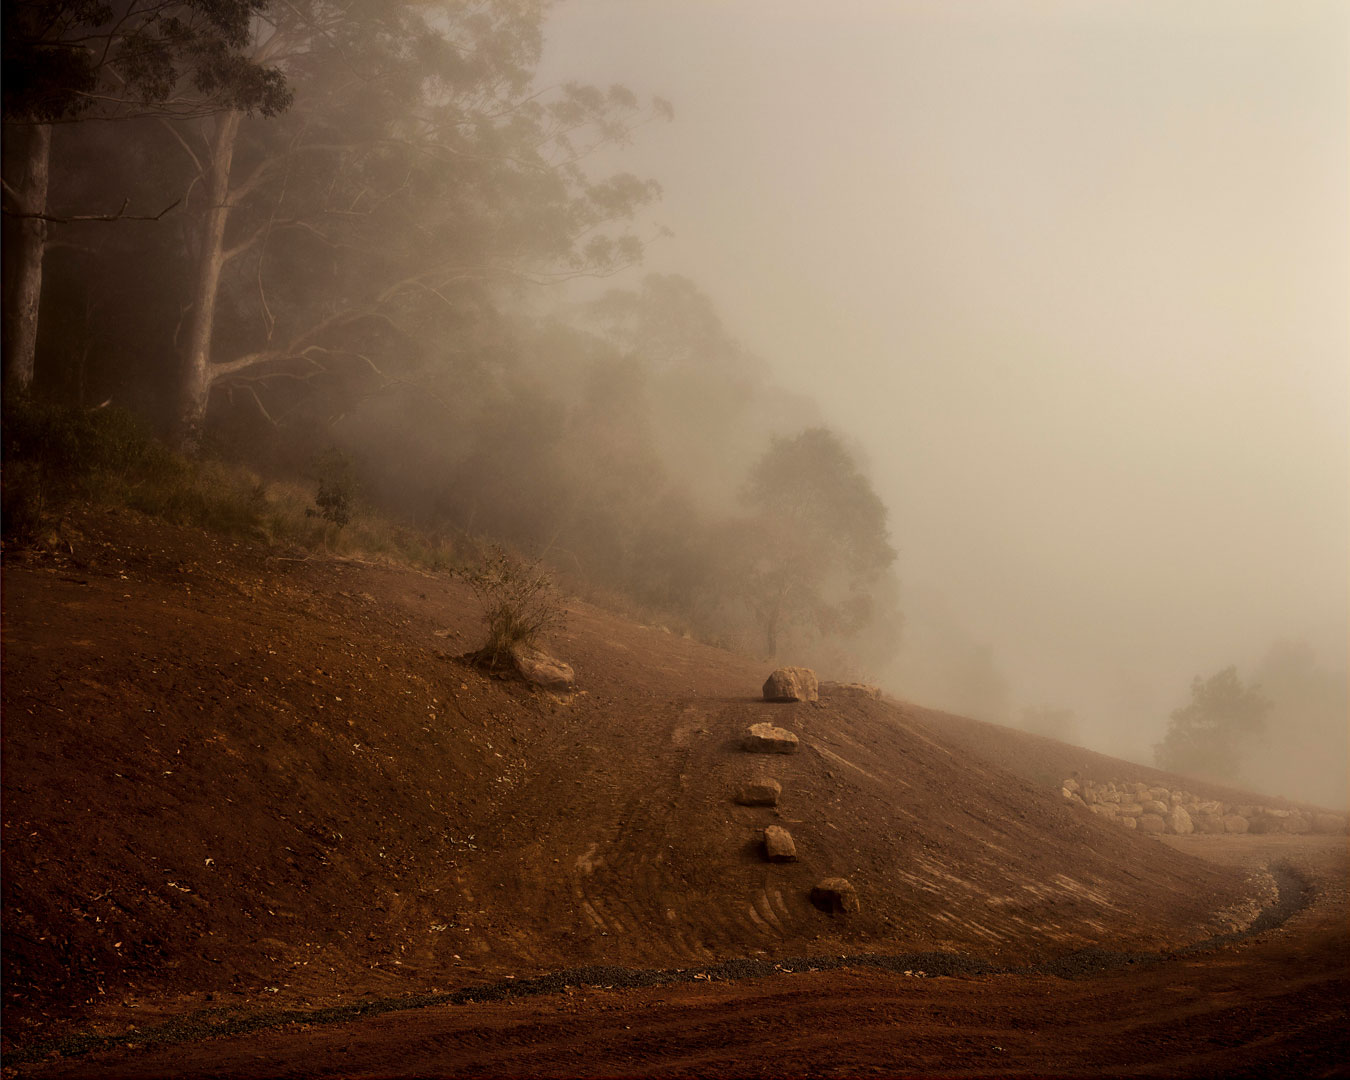 red-dirt-hill-with-rocks-mid-landscaping-in-the-morning-mist